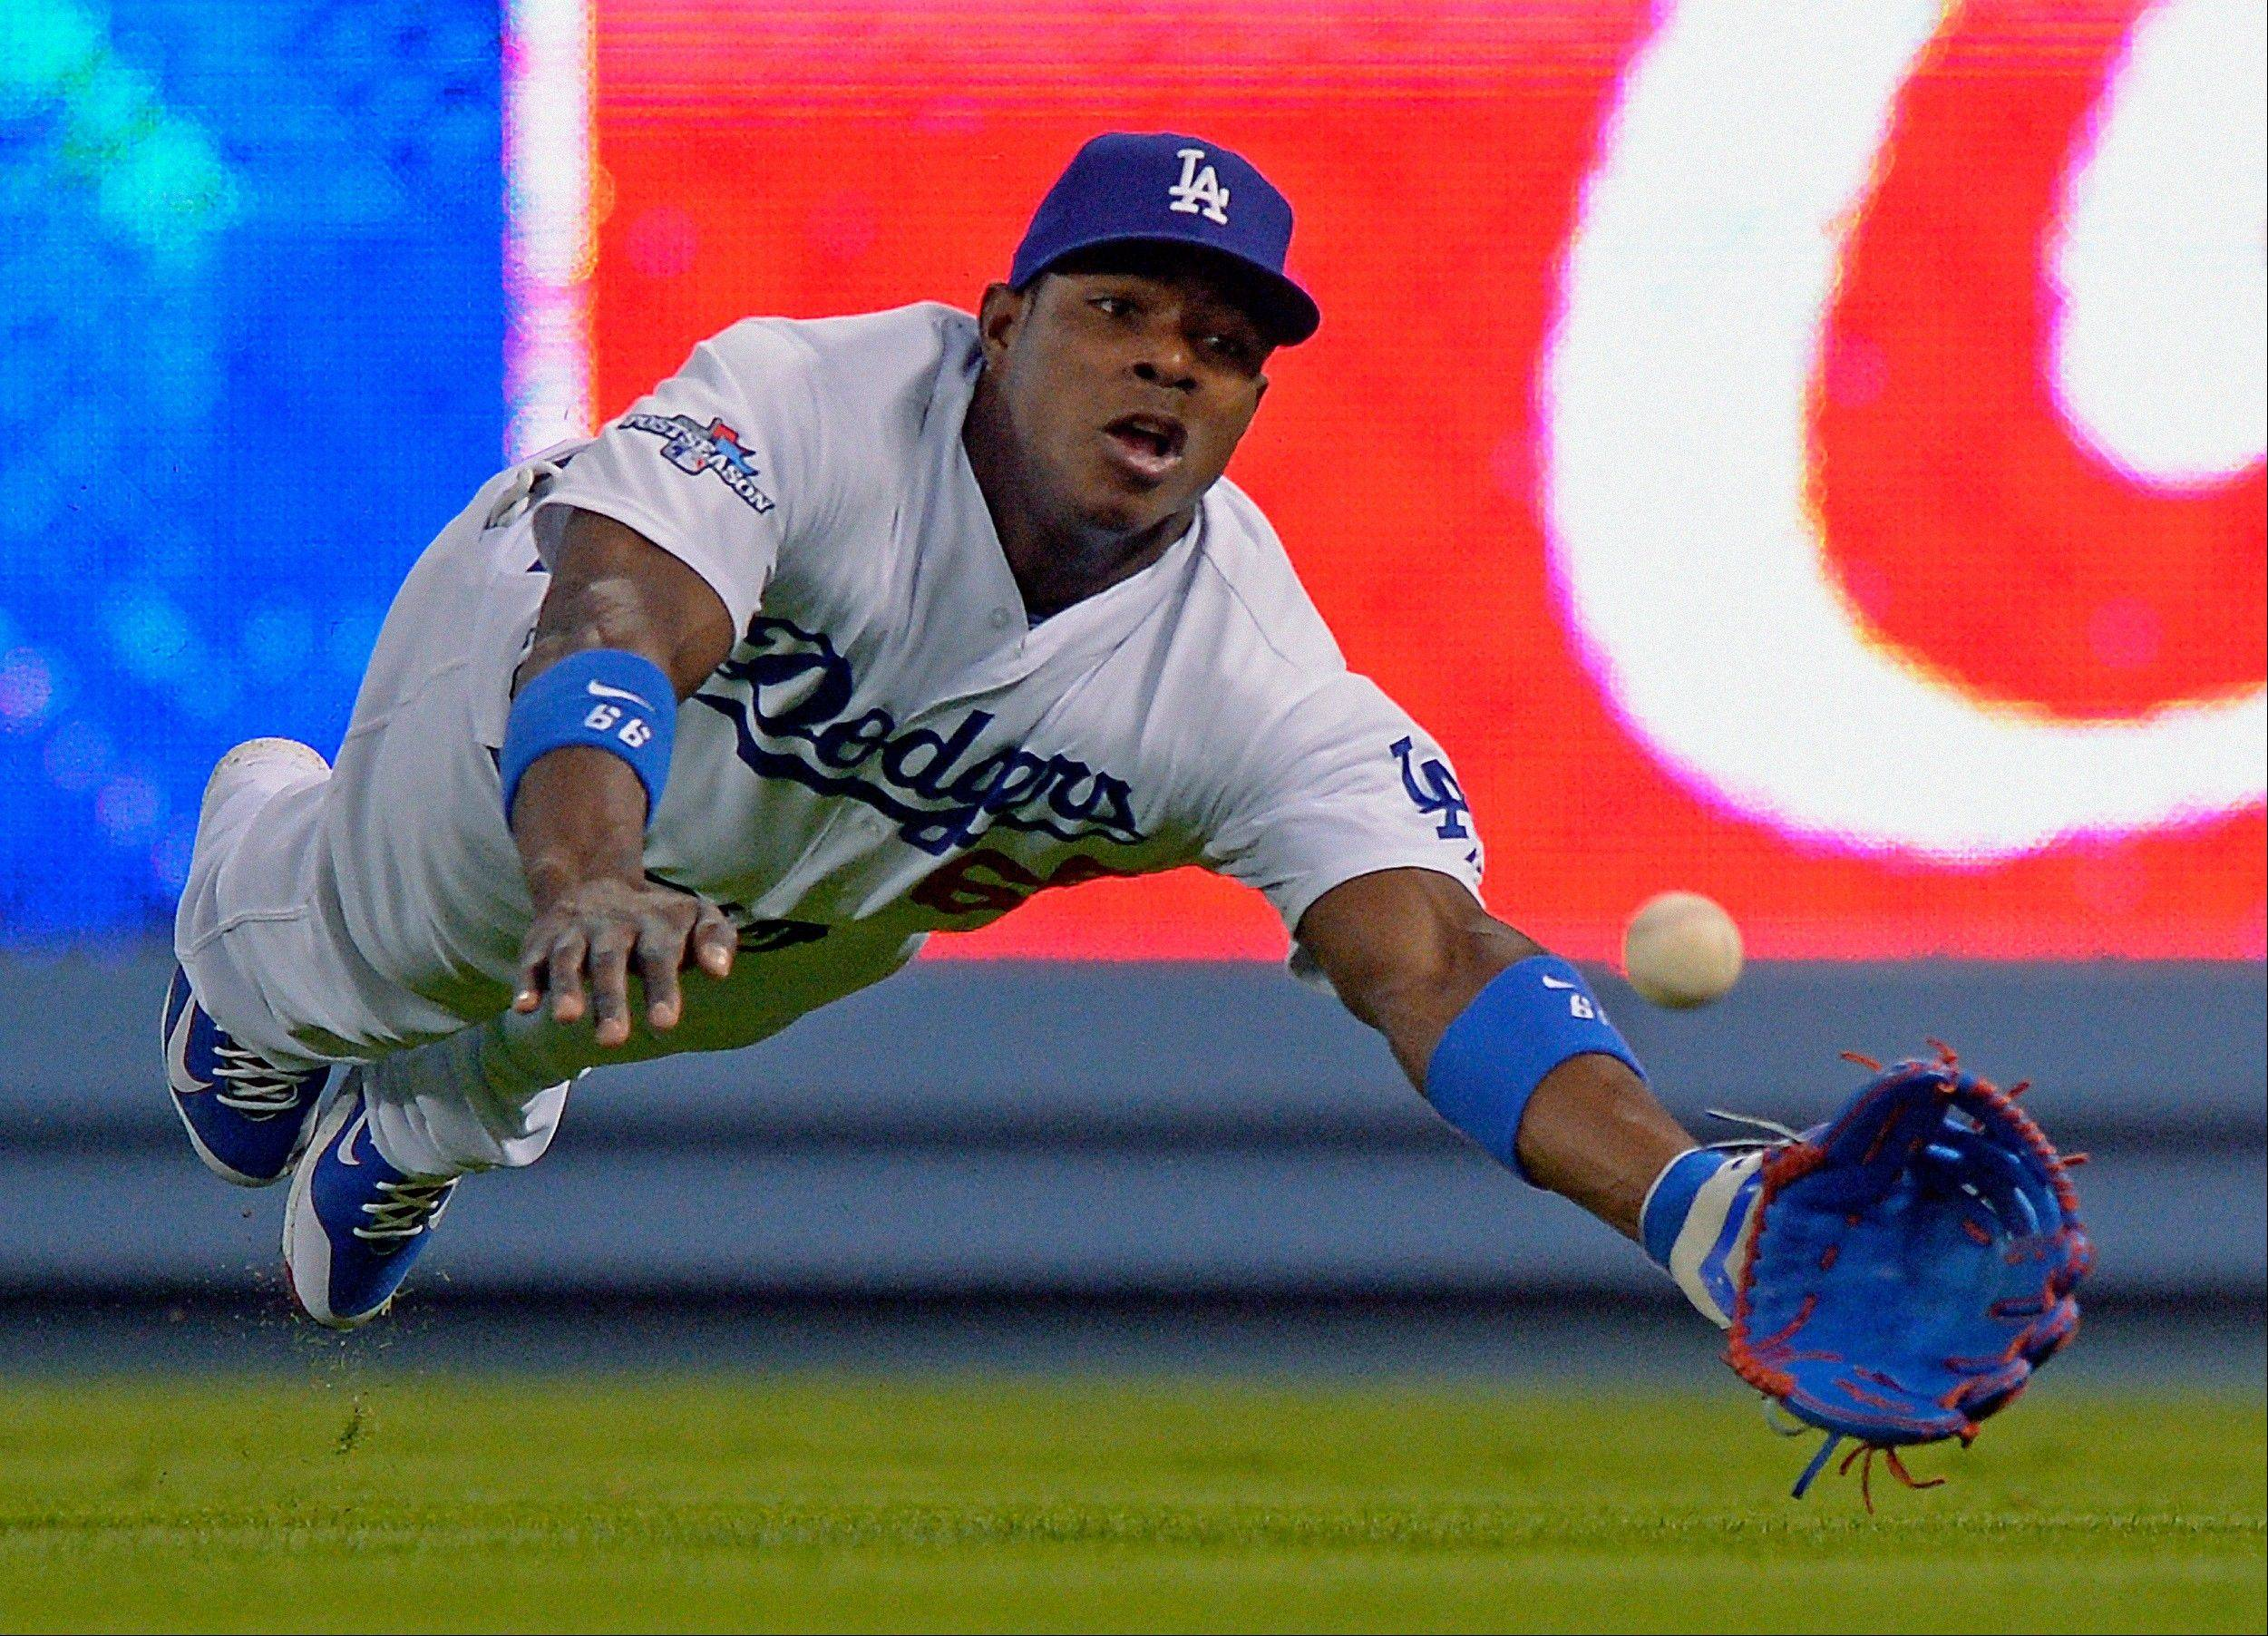 The Dodgers� Yasiel Puig dives for a ball hit by the Cardinals� David Freese during the fifth inning of Game 3 of the National League Championship Series on Monday in Los Angeles. The ball eluded Puig for a hit.